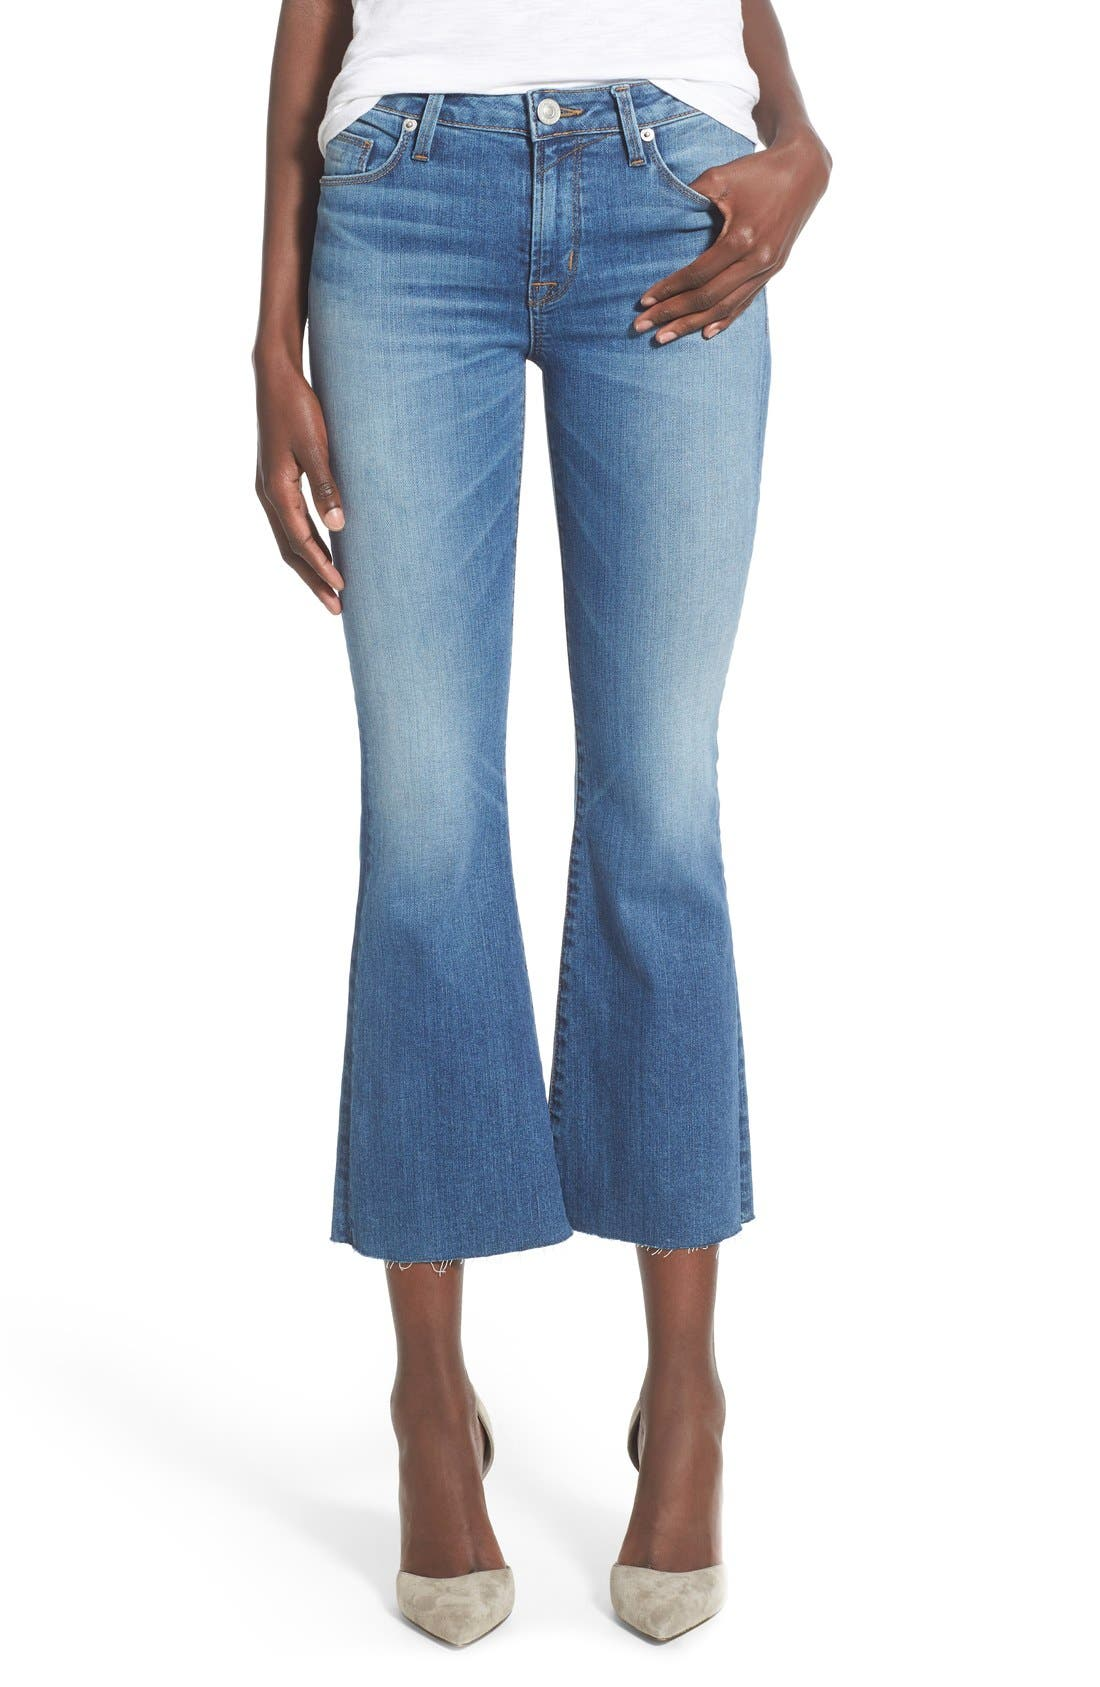 Alternate Image 1 Selected - Hudson Jeans 'Mia' Raw Hem Crop Flare Jeans (Carve)